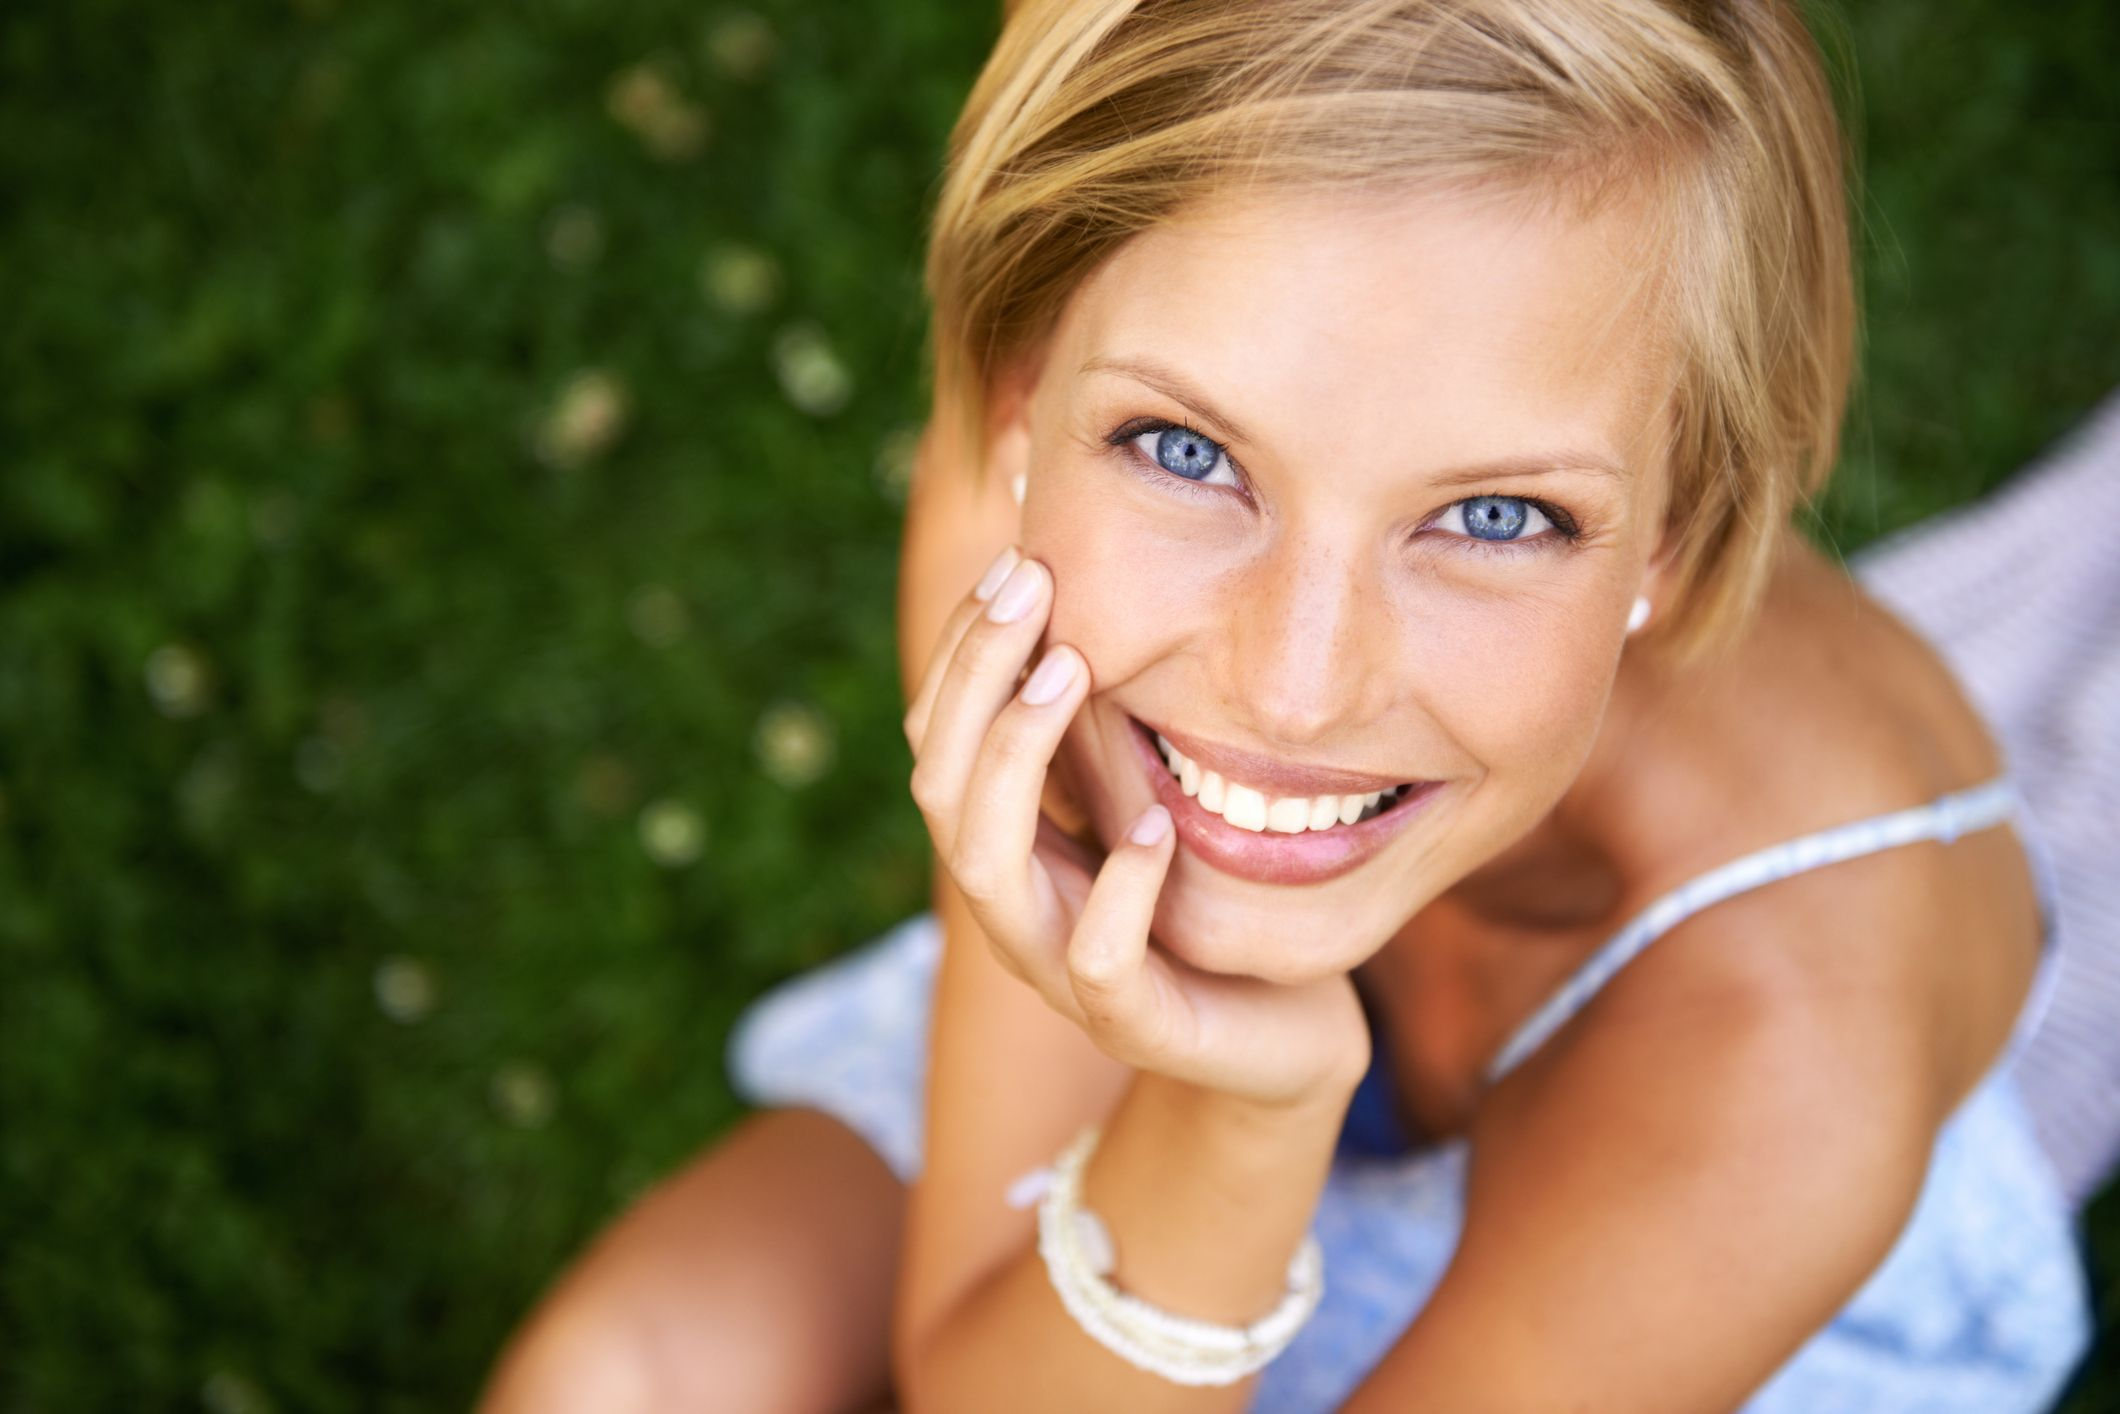 Portrait of smiling blonde woman outside in the green grass